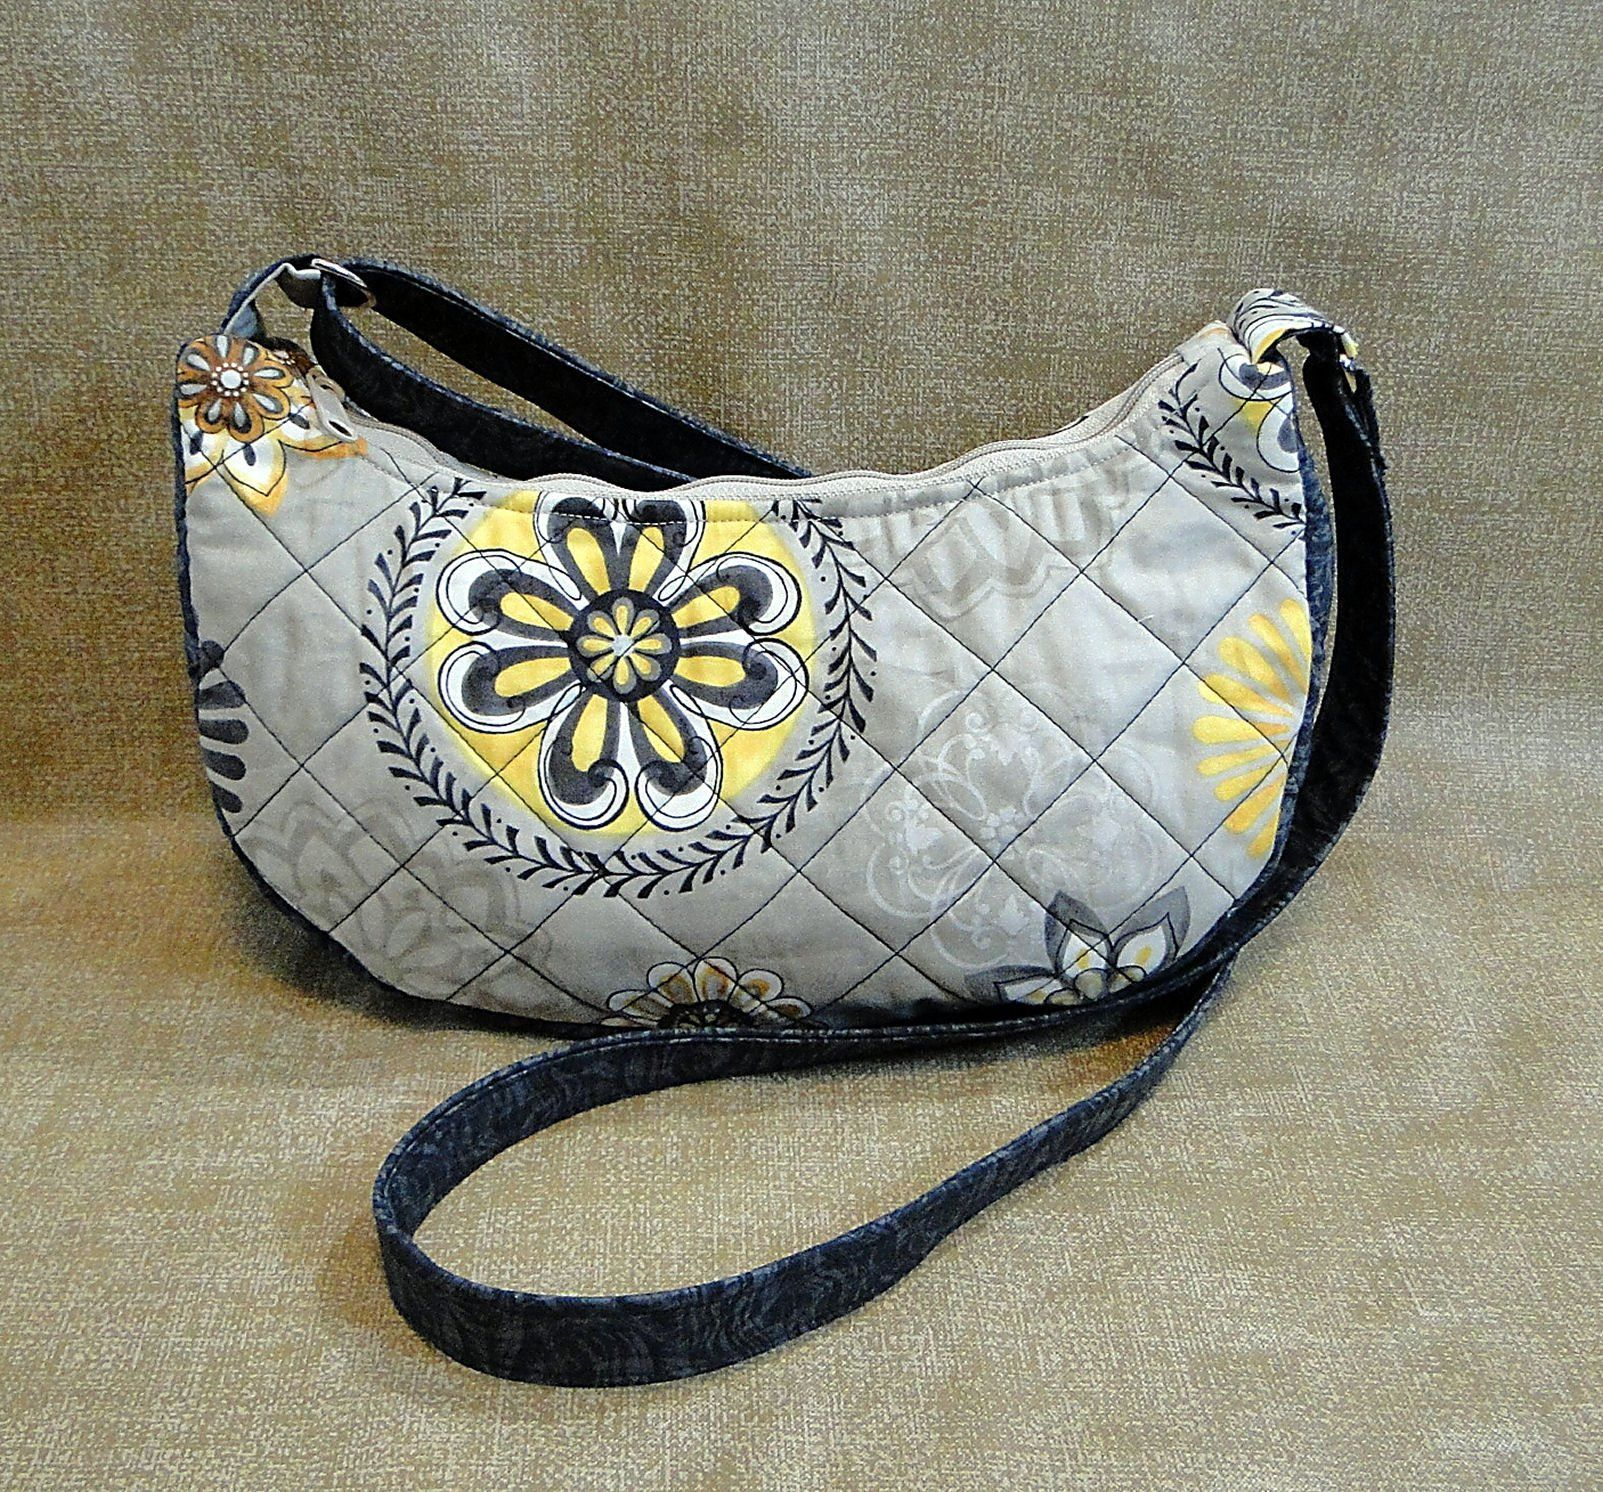 Conceal Carry Hobo Bag, Gray, Quilted Fabric Purse, Medium